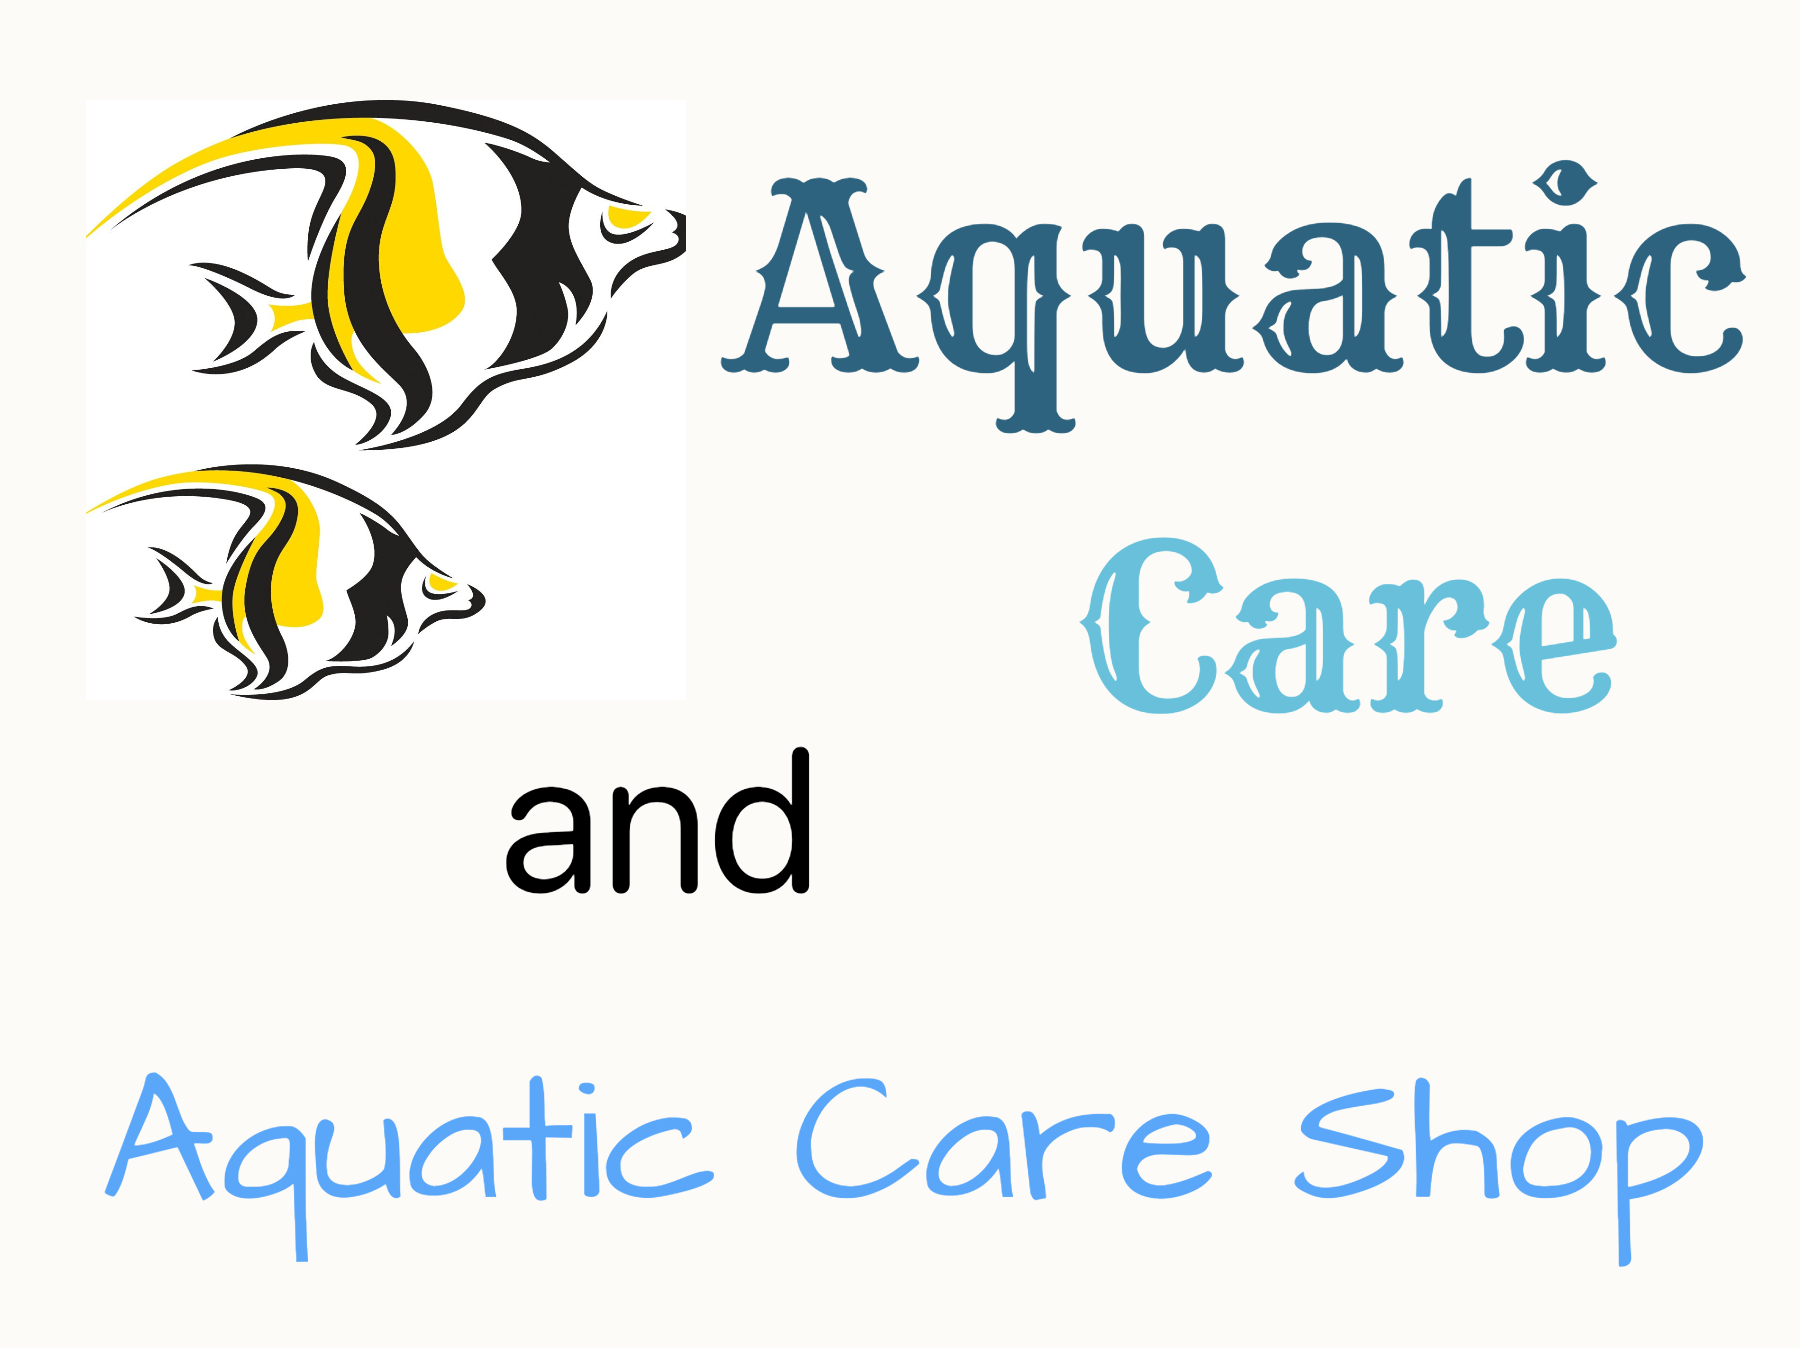 Aquatic Care